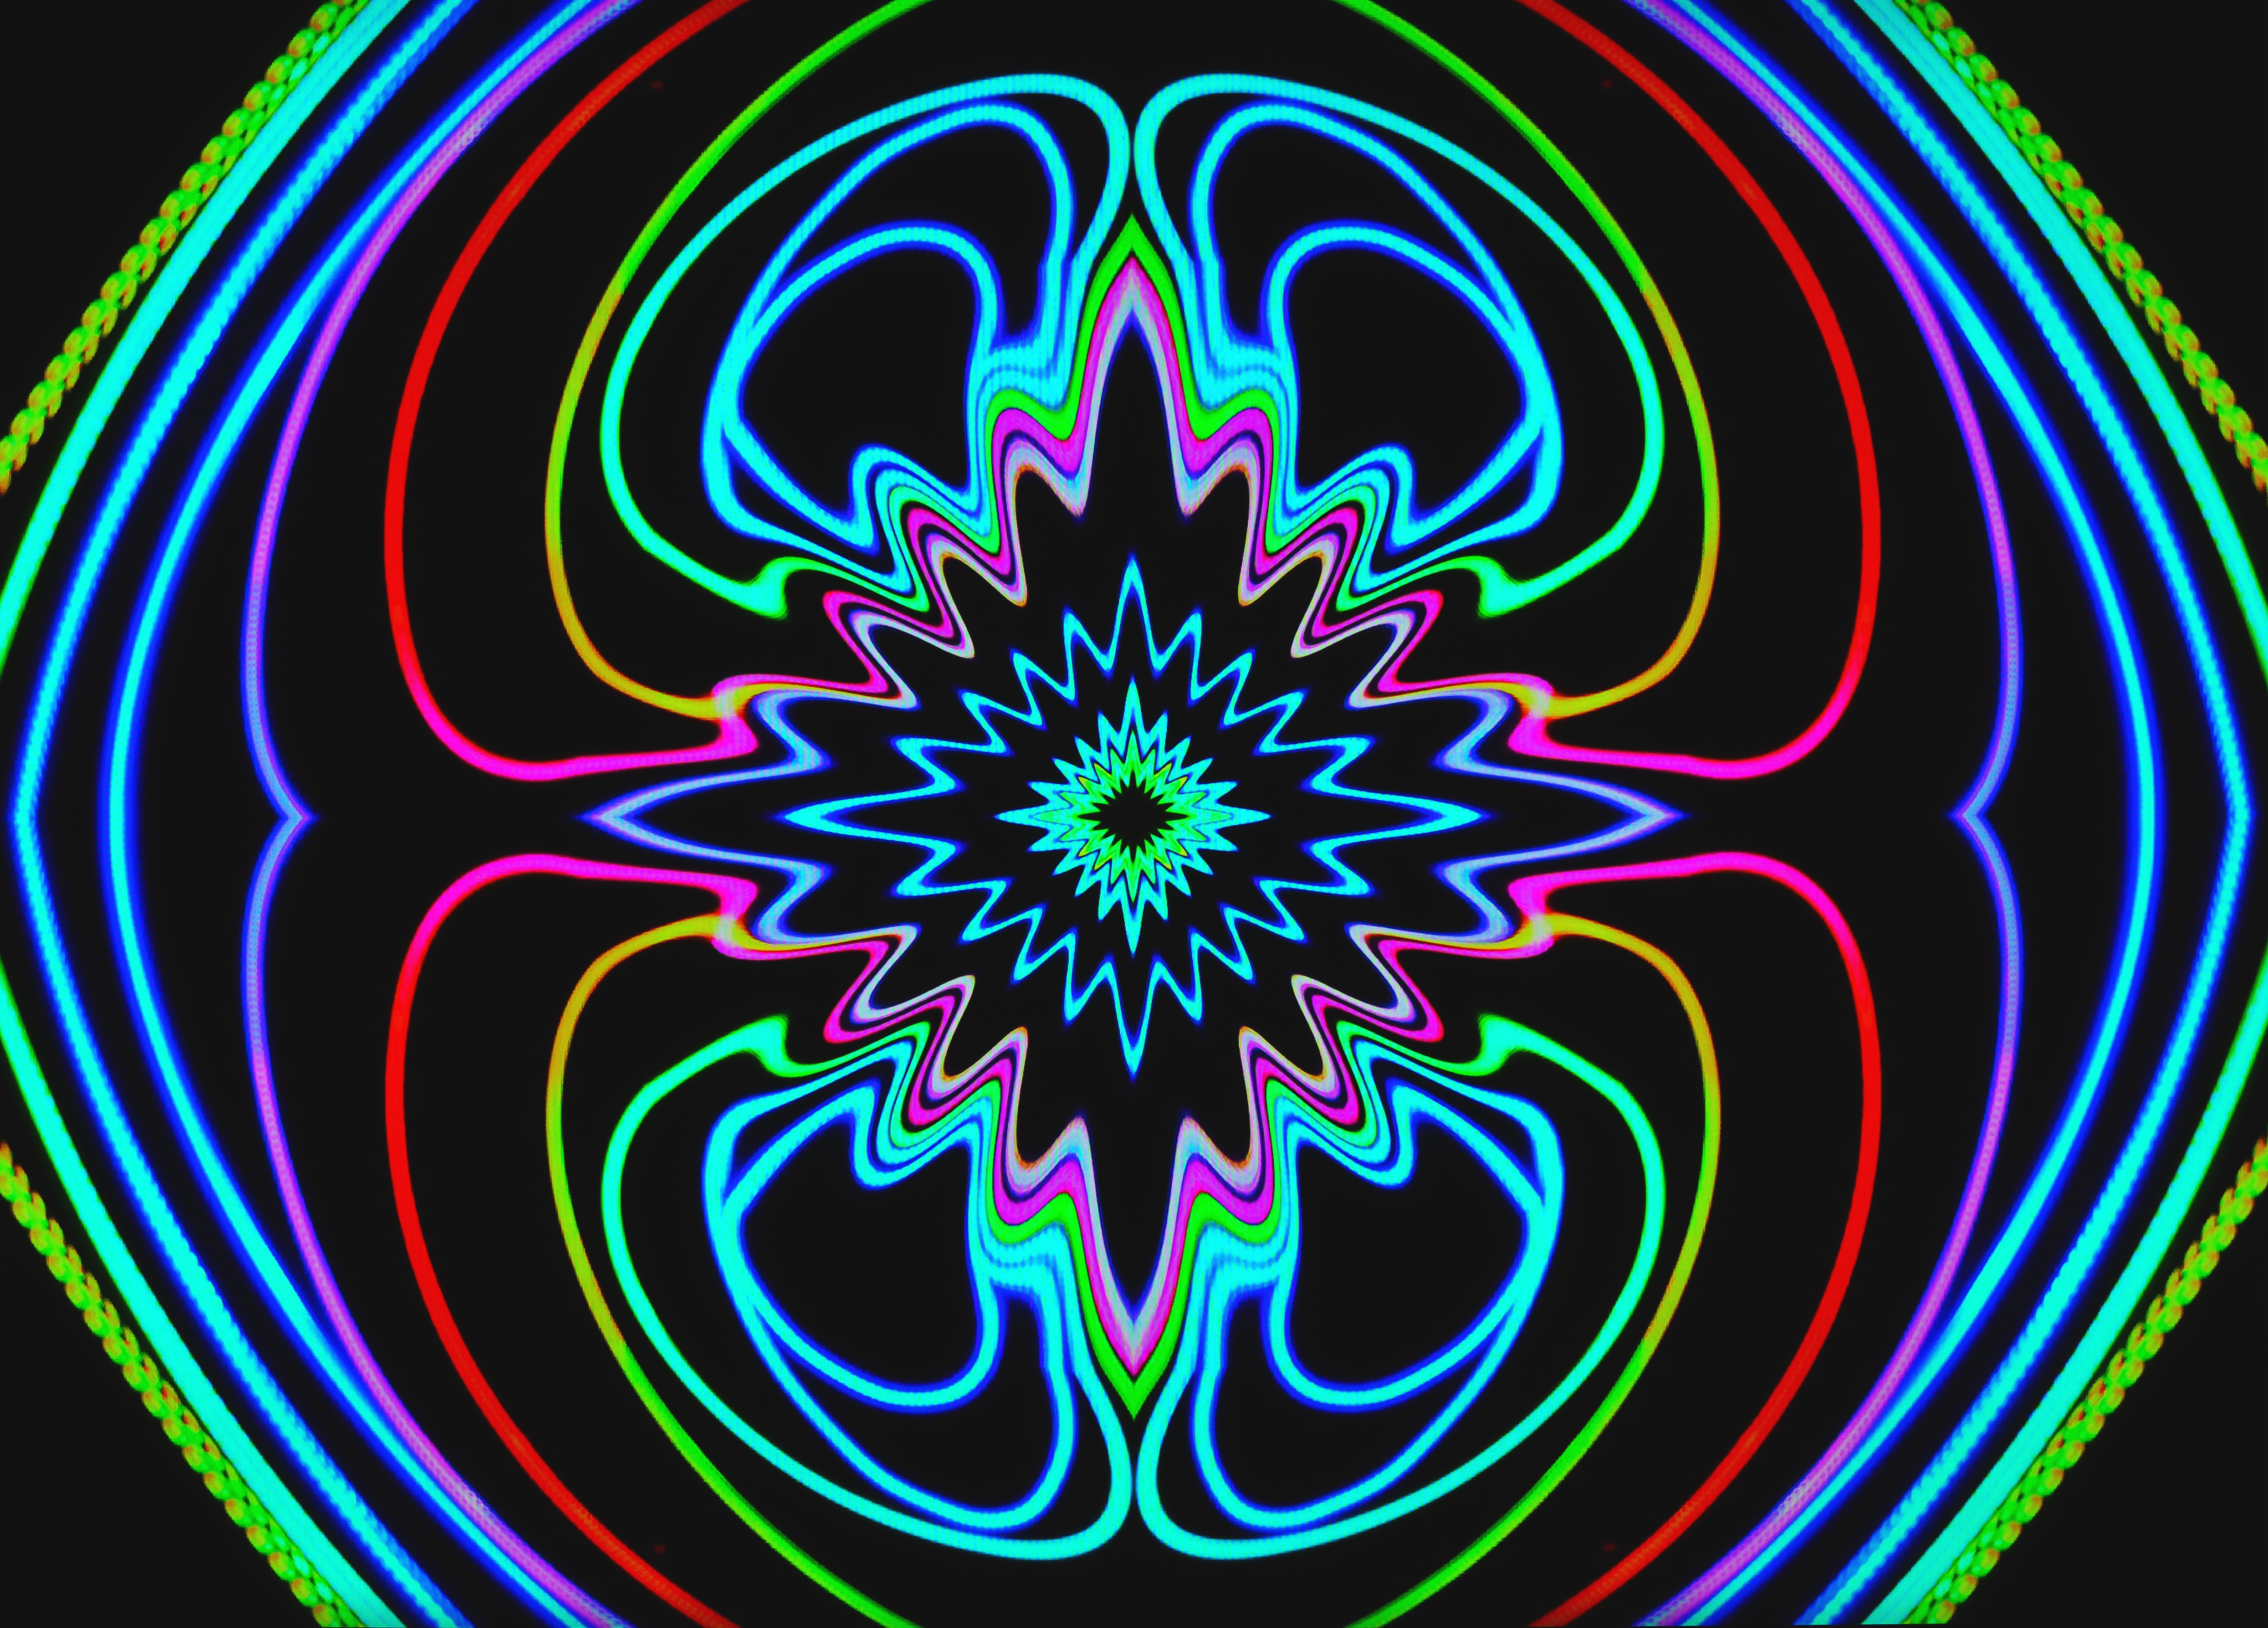 Download mobile wallpaper Neon, Glow, Pattern, Fractal, Abstract for free.